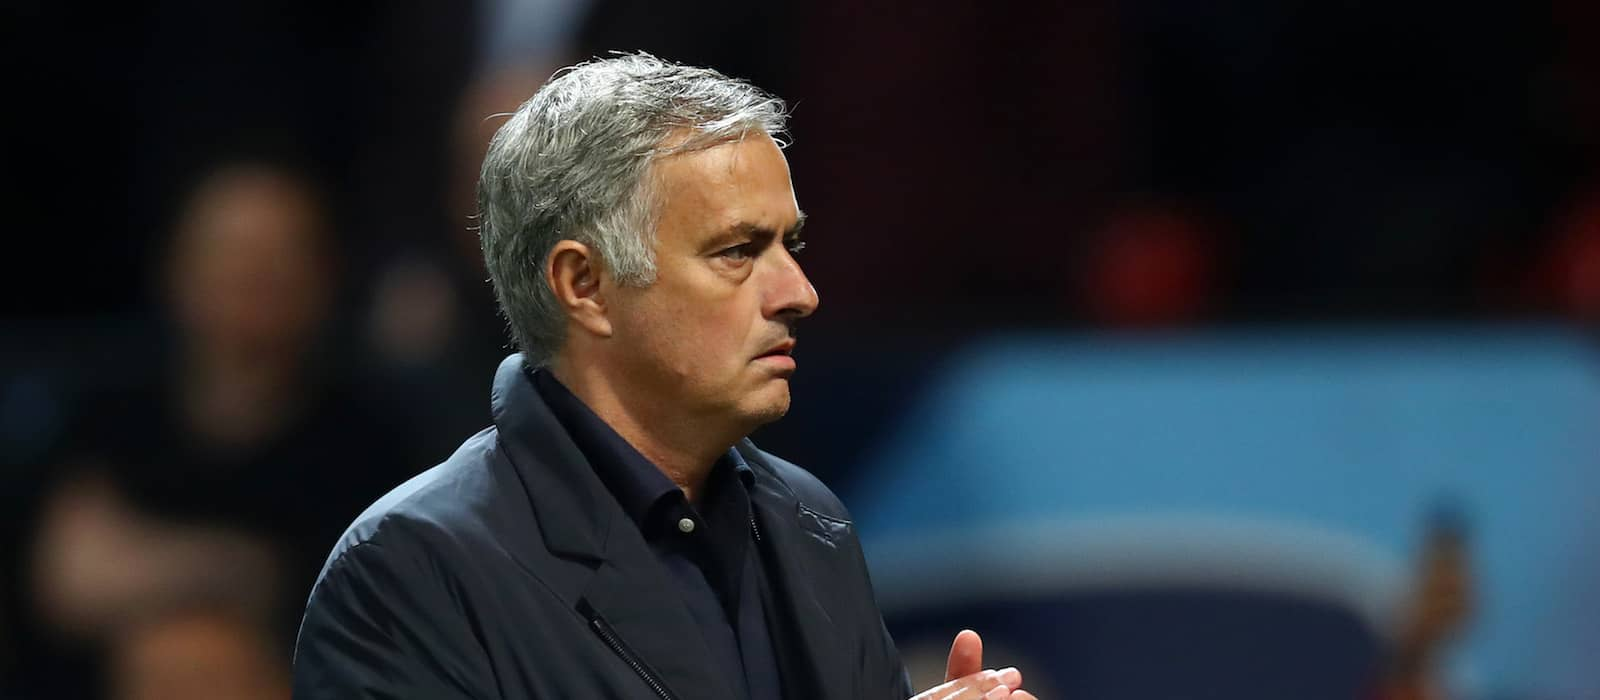 Jose Mourinho discusses his future at Manchester United amid speculation